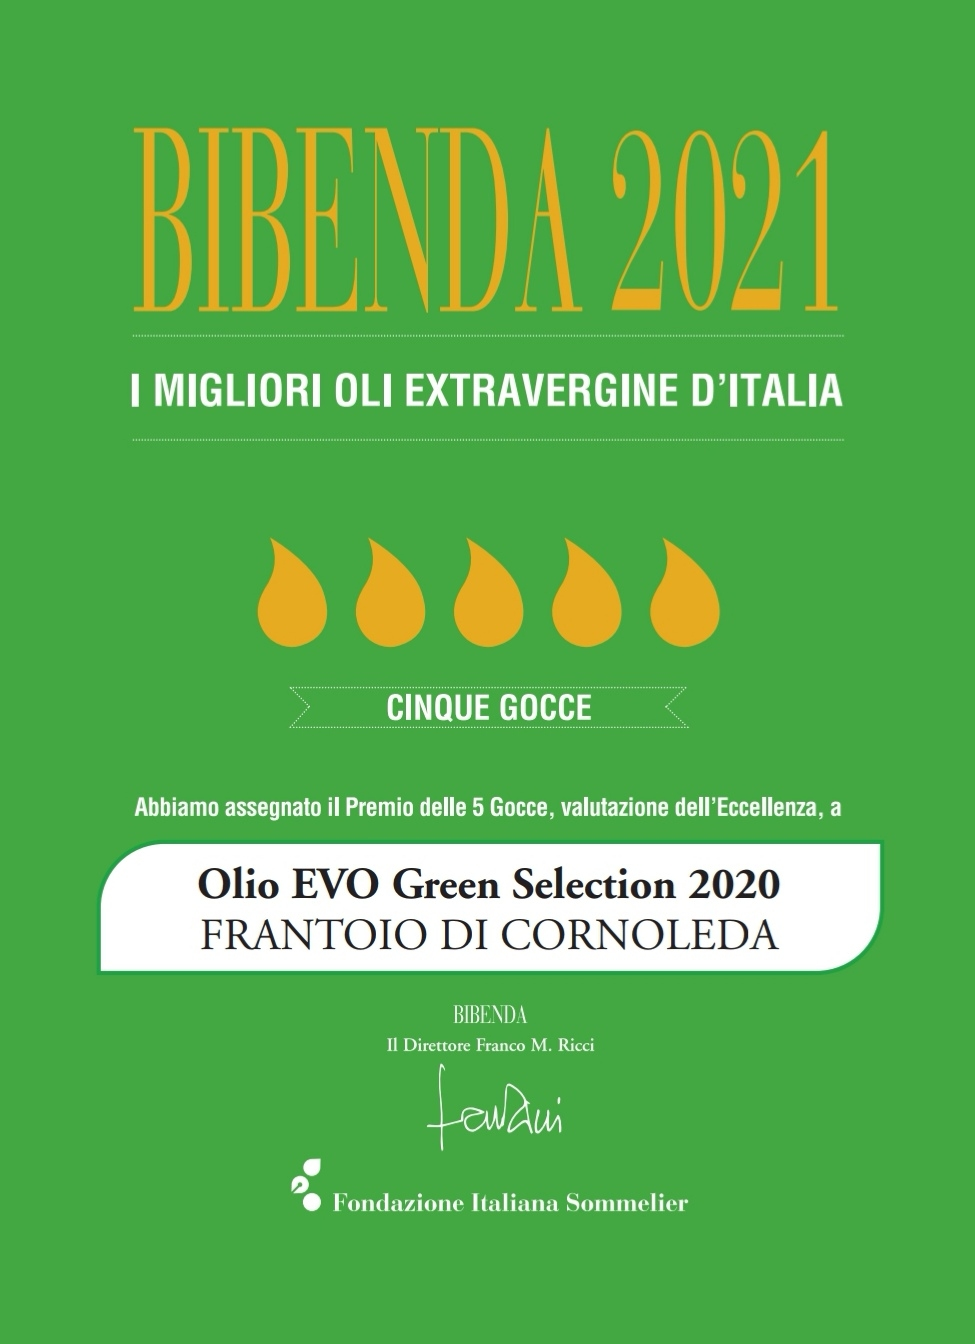 5 GOCCE BIBENDA 2021 PER IL GREEN SELECTION